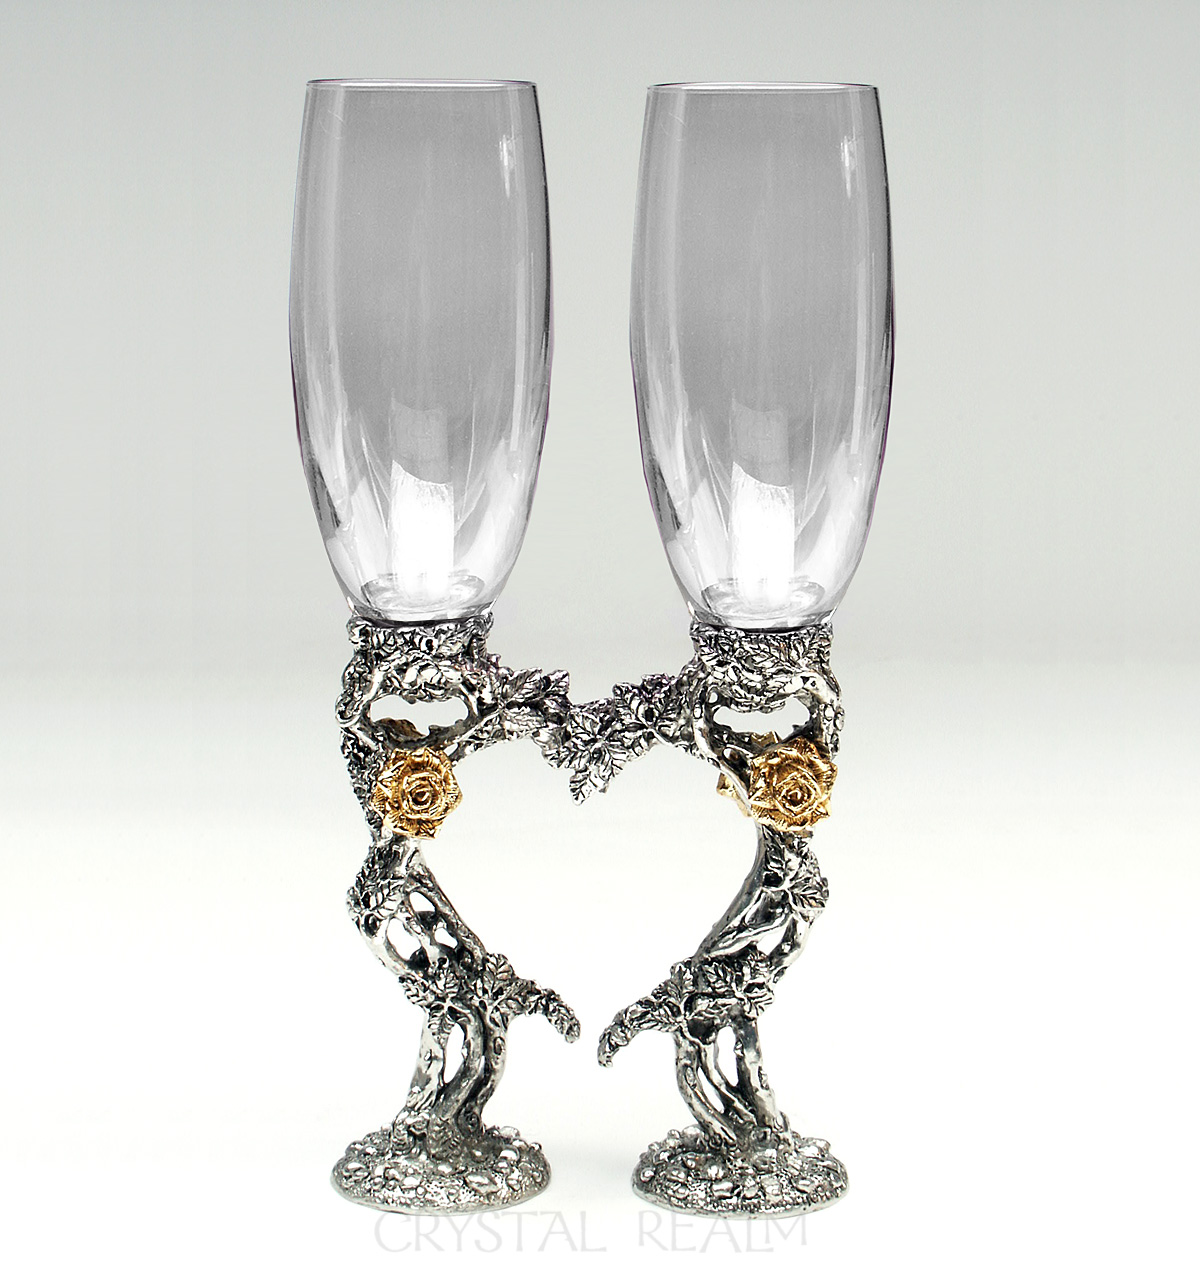 Clear champagne glasses with 23k plated roses and a heart shape